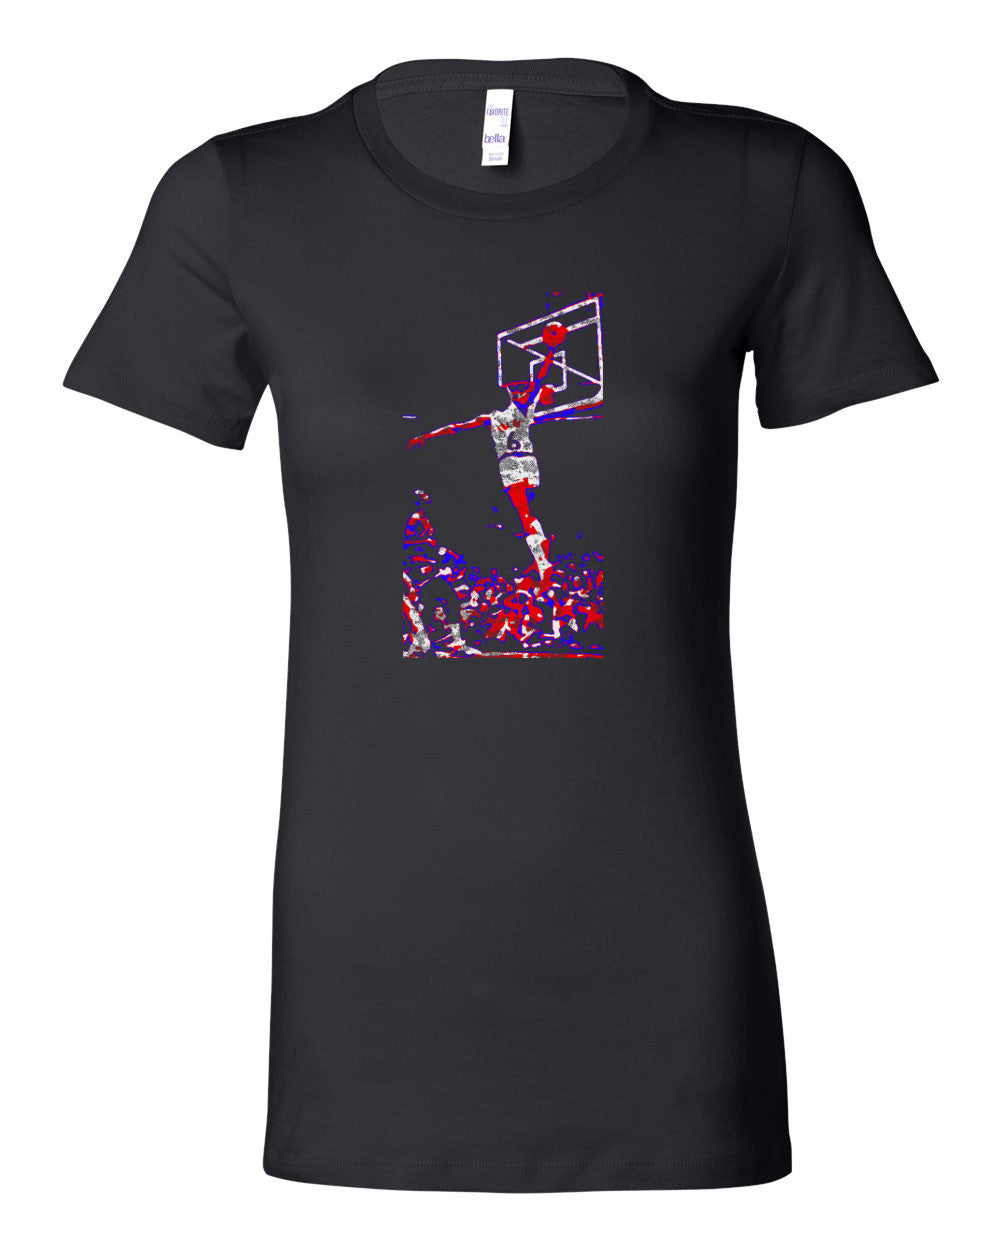 The Dr. LADIES Junior-Fit T-Shirt